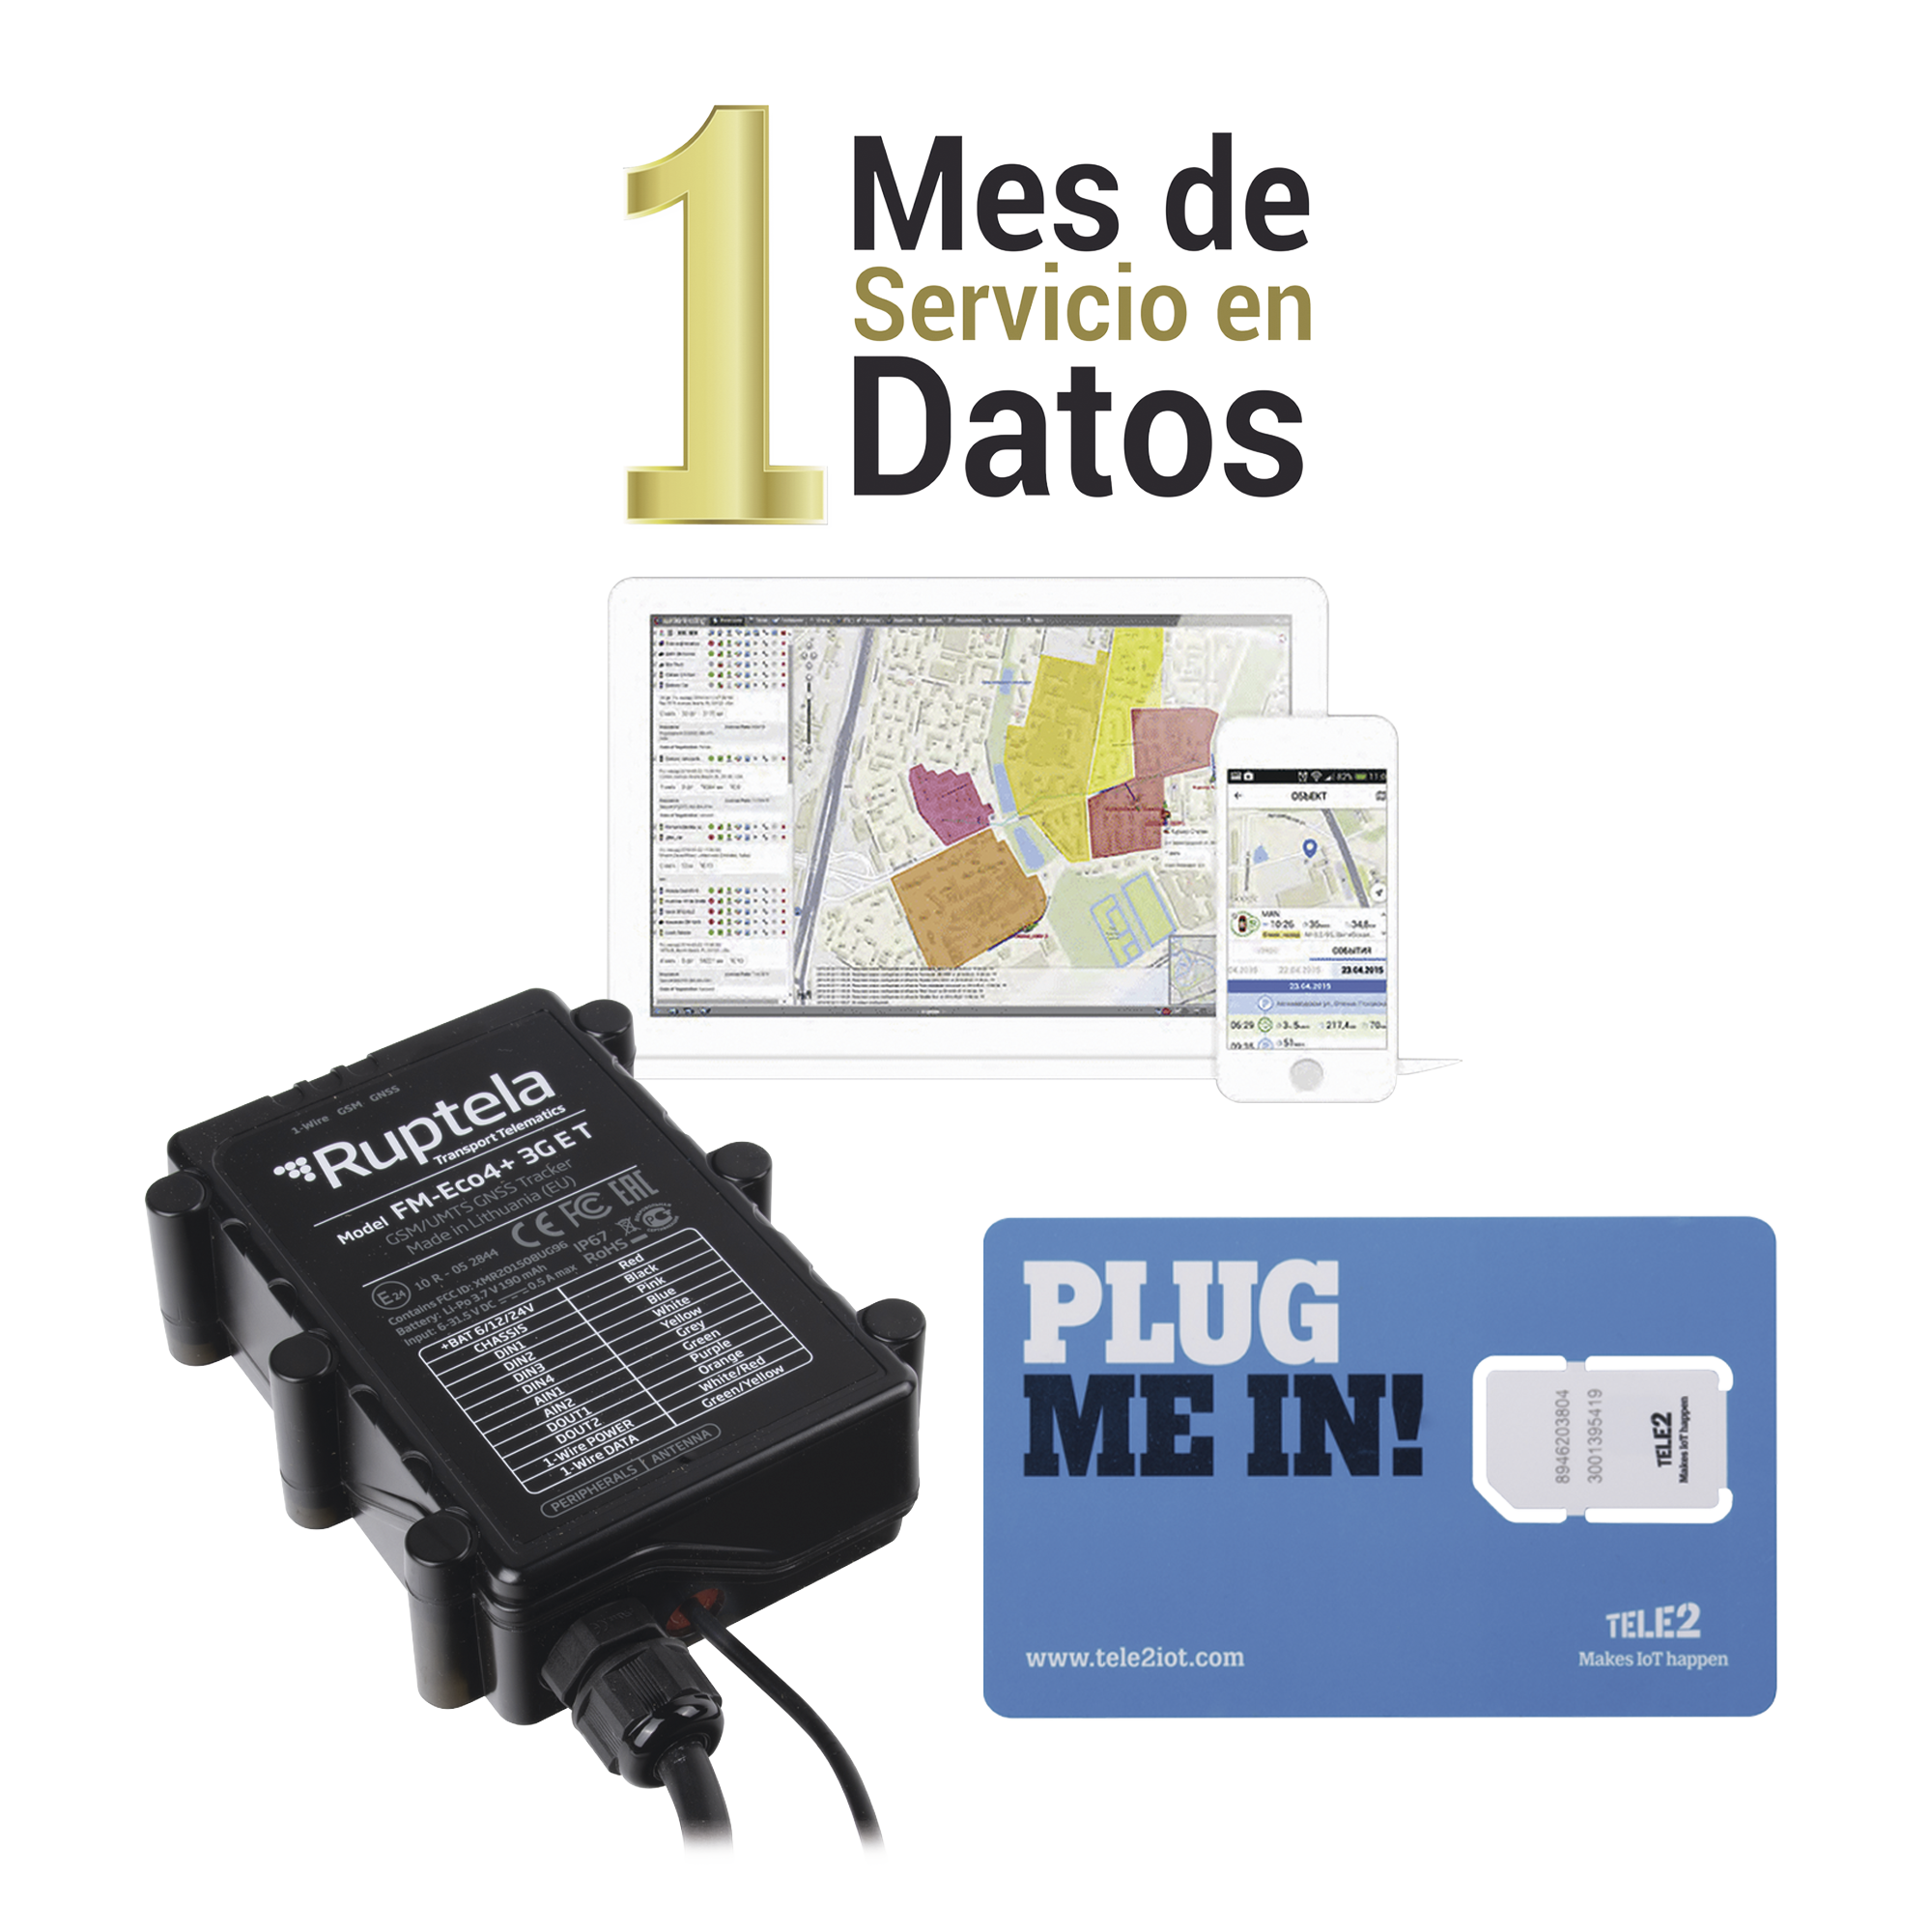 kit Localizador Vehicular, Incluye ECO4LIGHT3GEPCOM + SIM30M2M + VOUCHER1M + EPCOMGPSMENSUAL